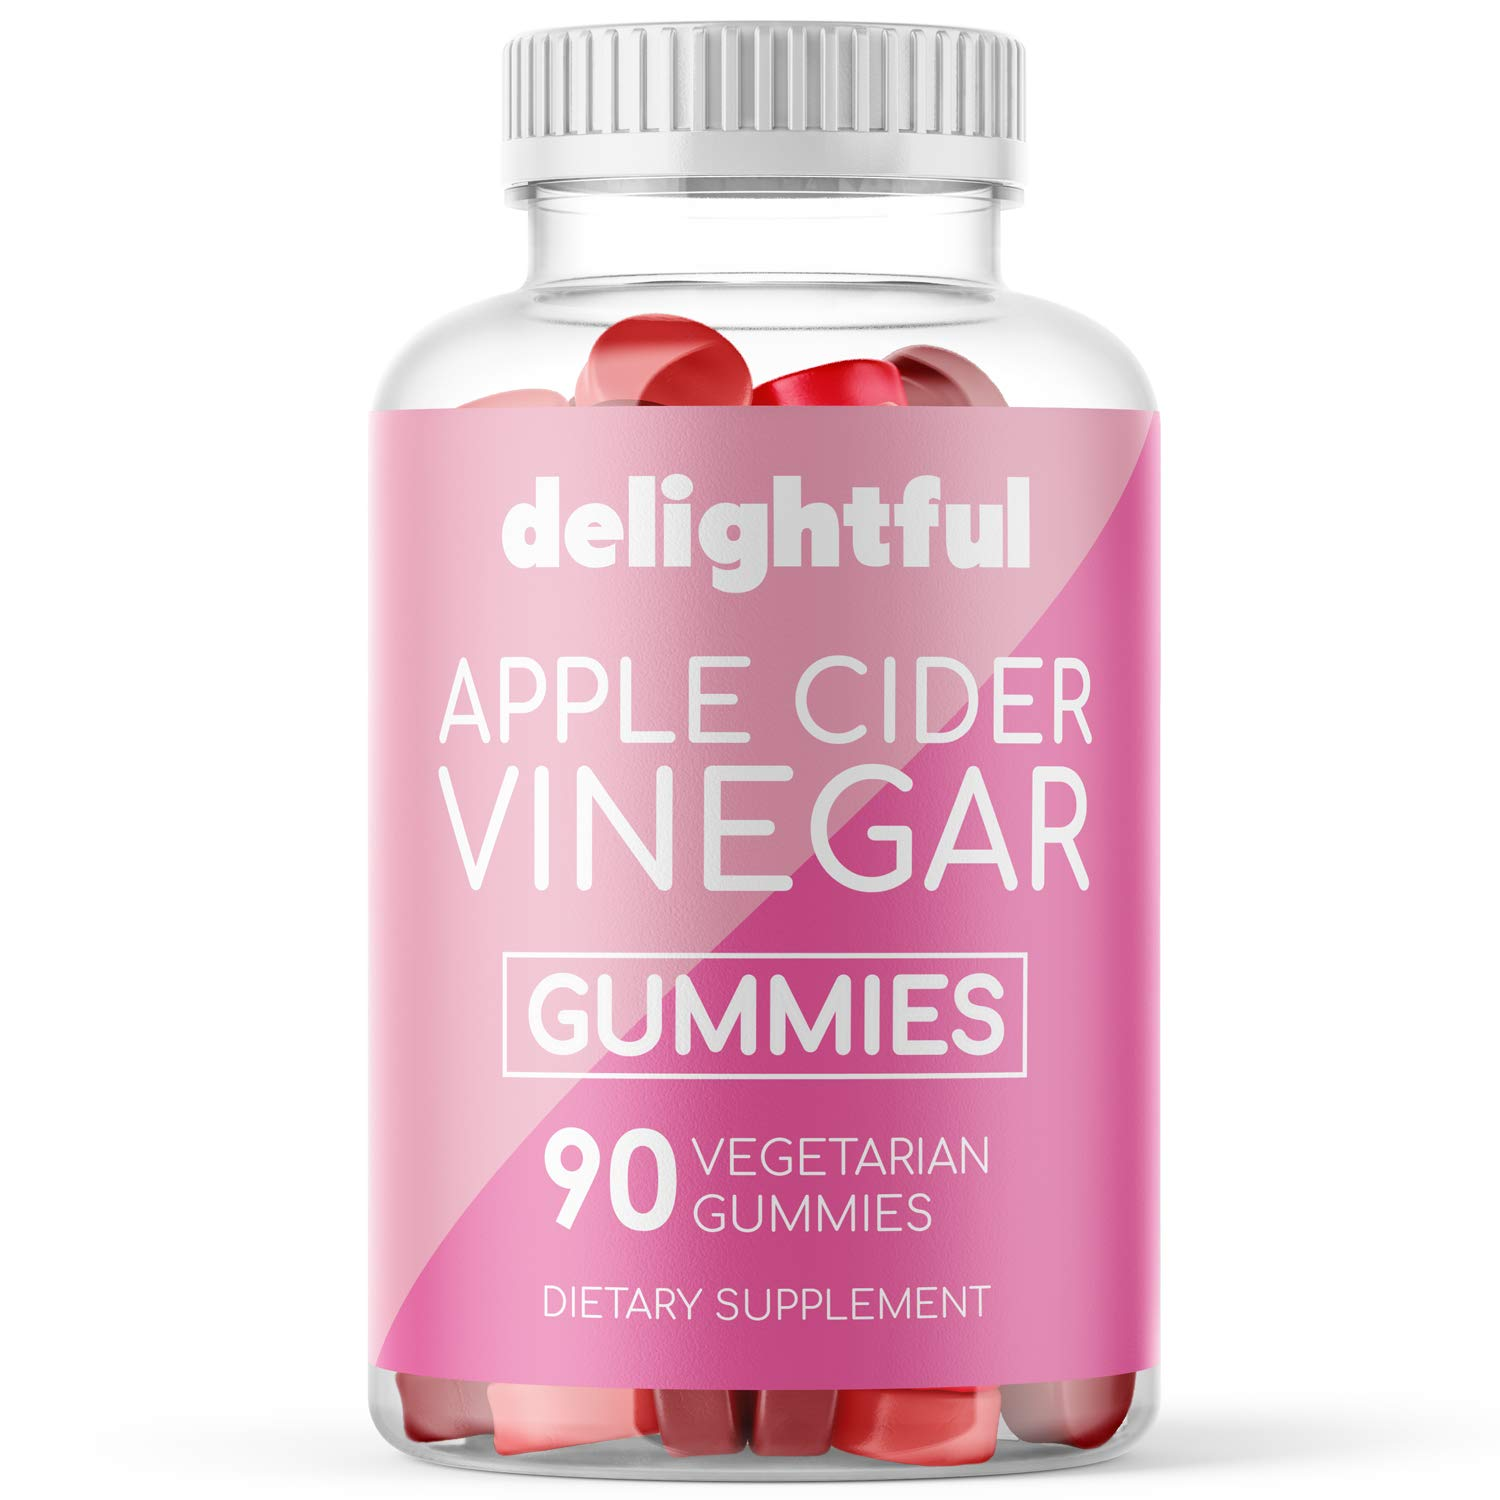 Organic Apple Cider Vinegar Gummies with The Mother - Gluten Free, Vegetarian ACV with Ginger Extract for Detox, Weight Loss, and Cleanse - 90 Count ACV Gummy Alternative to Pills, Capsules, Tablets